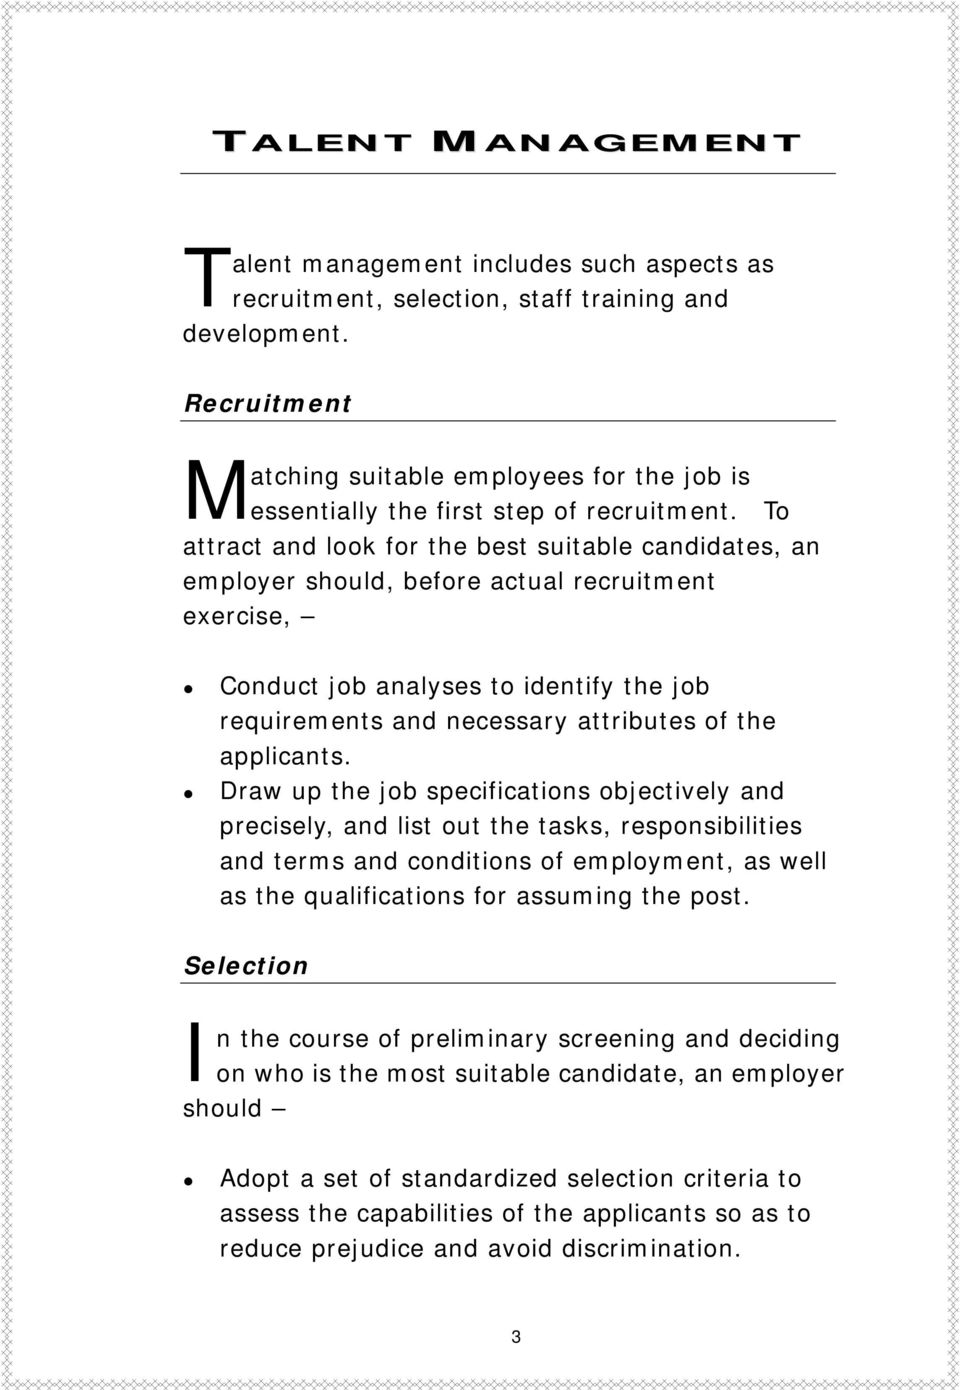 To attract and look for the best suitable candidates, an employer should, before actual recruitment exercise, Conduct job analyses to identify the job requirements and necessary attributes of the